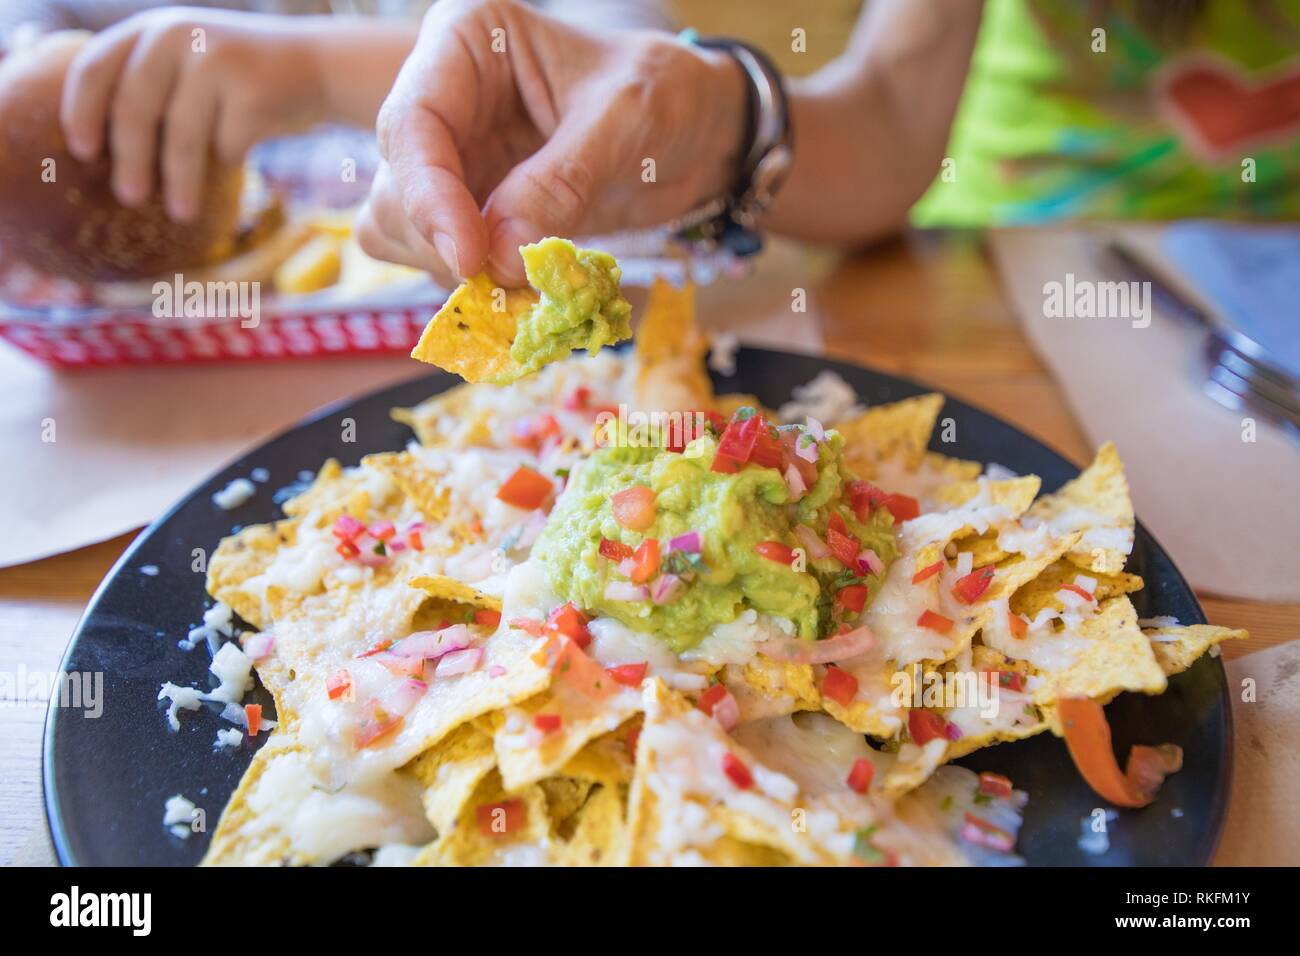 woman hand dipping nacho chips in avocado guacamole, cheese and chopped tomato on black plate, on wooden table with paper placemats at restaurant. Stock Photo